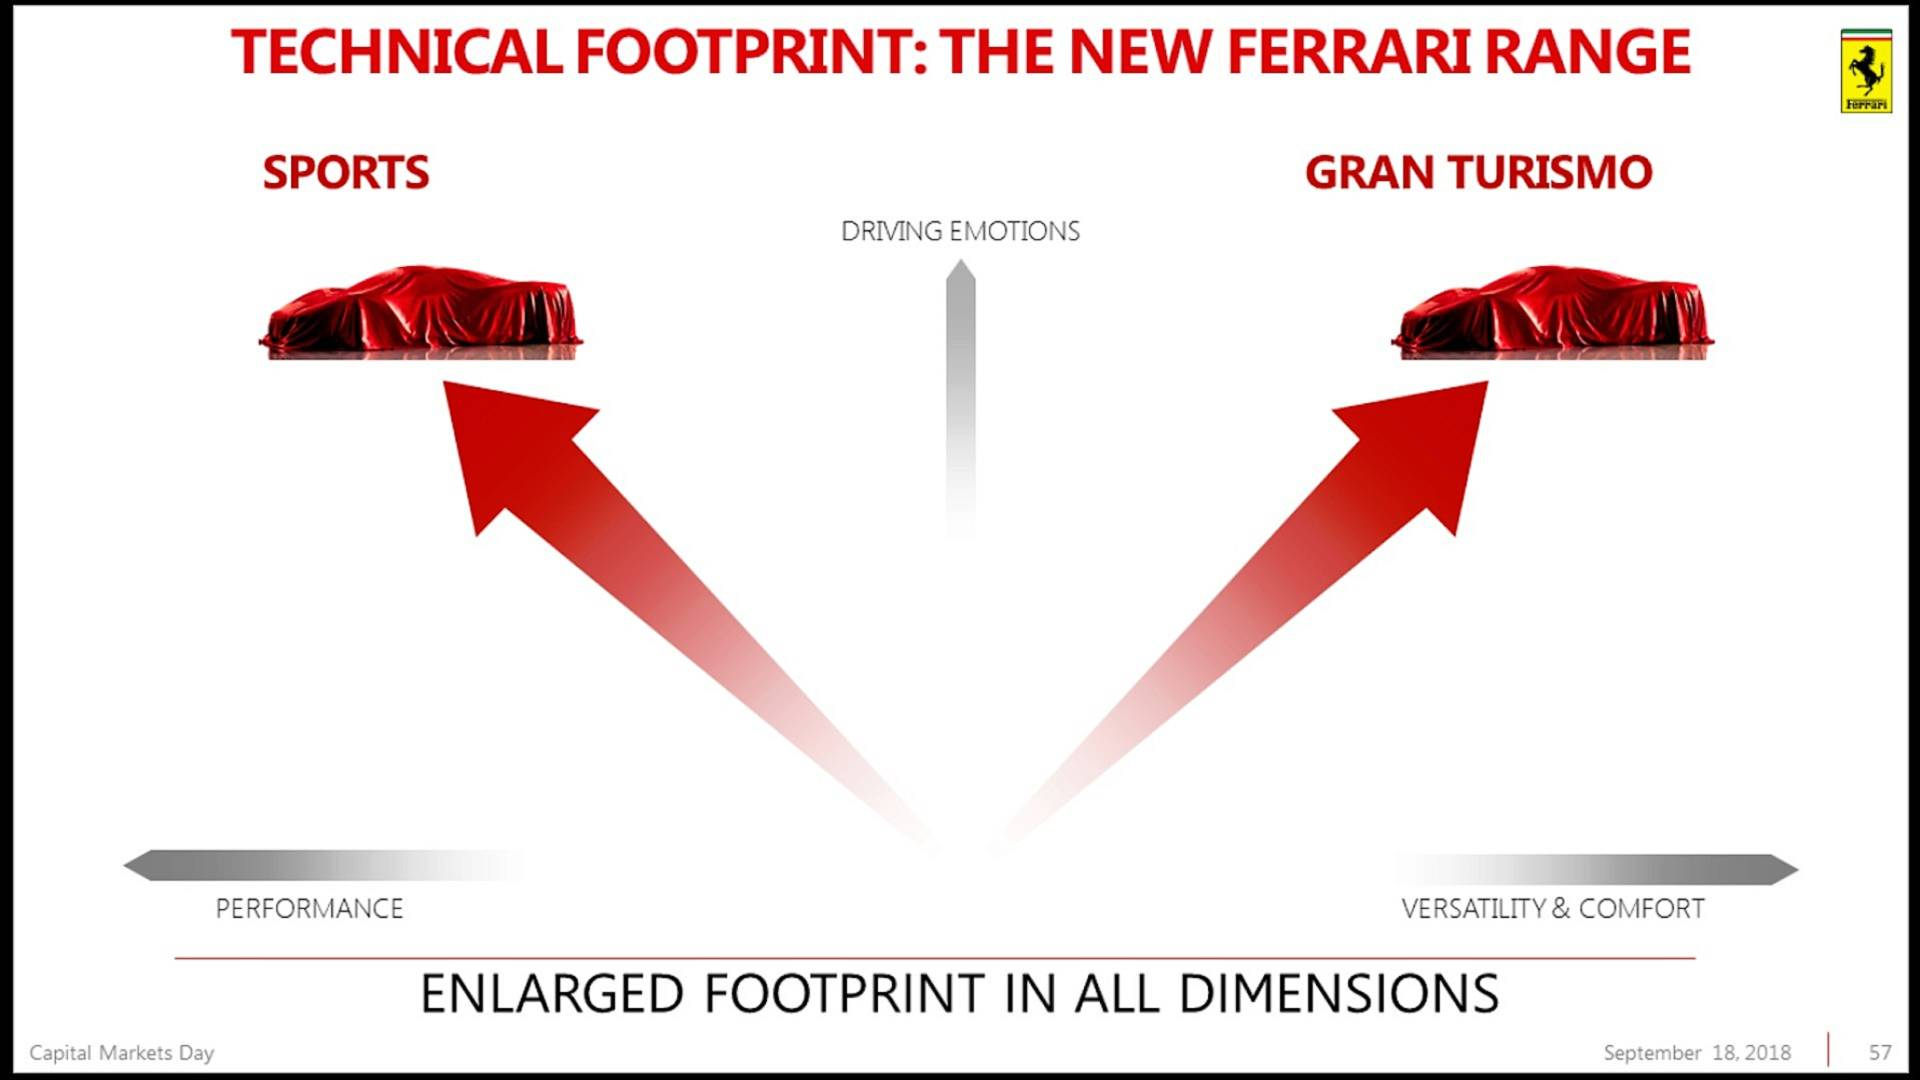 Piano Industriale Ferrari 2018-2022 (49)